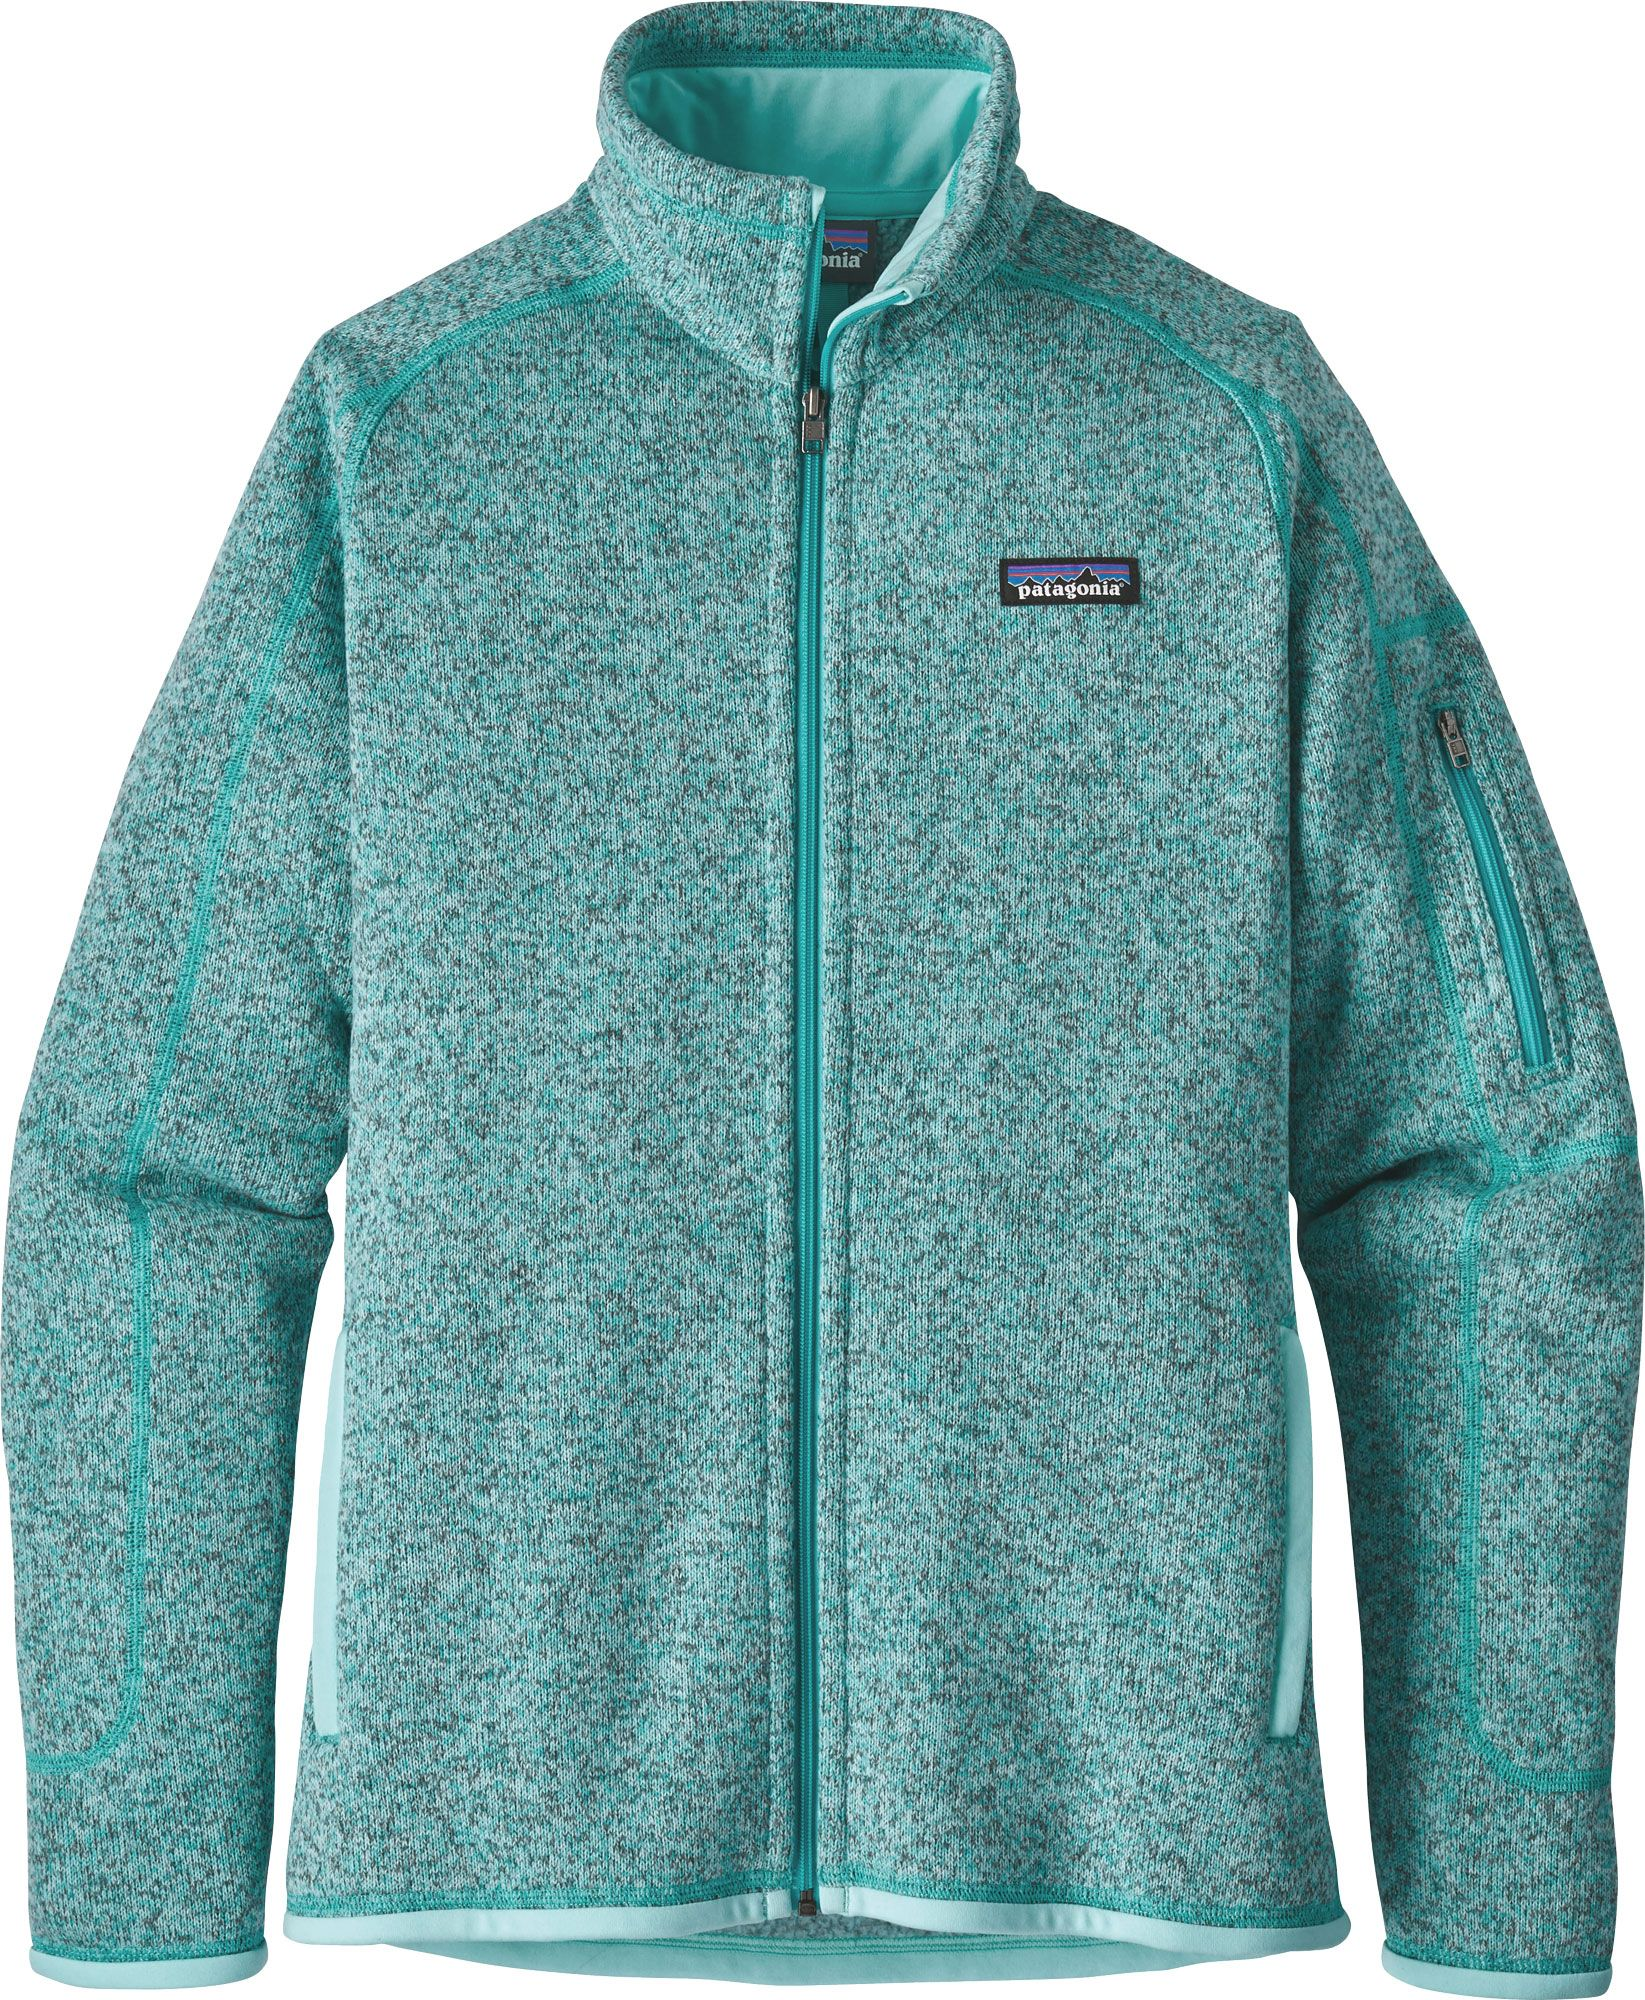 Patagonia Women's Better Sweater Fleece Jacket. 0:00. 0:00 / 0:00.  noImageFound ???